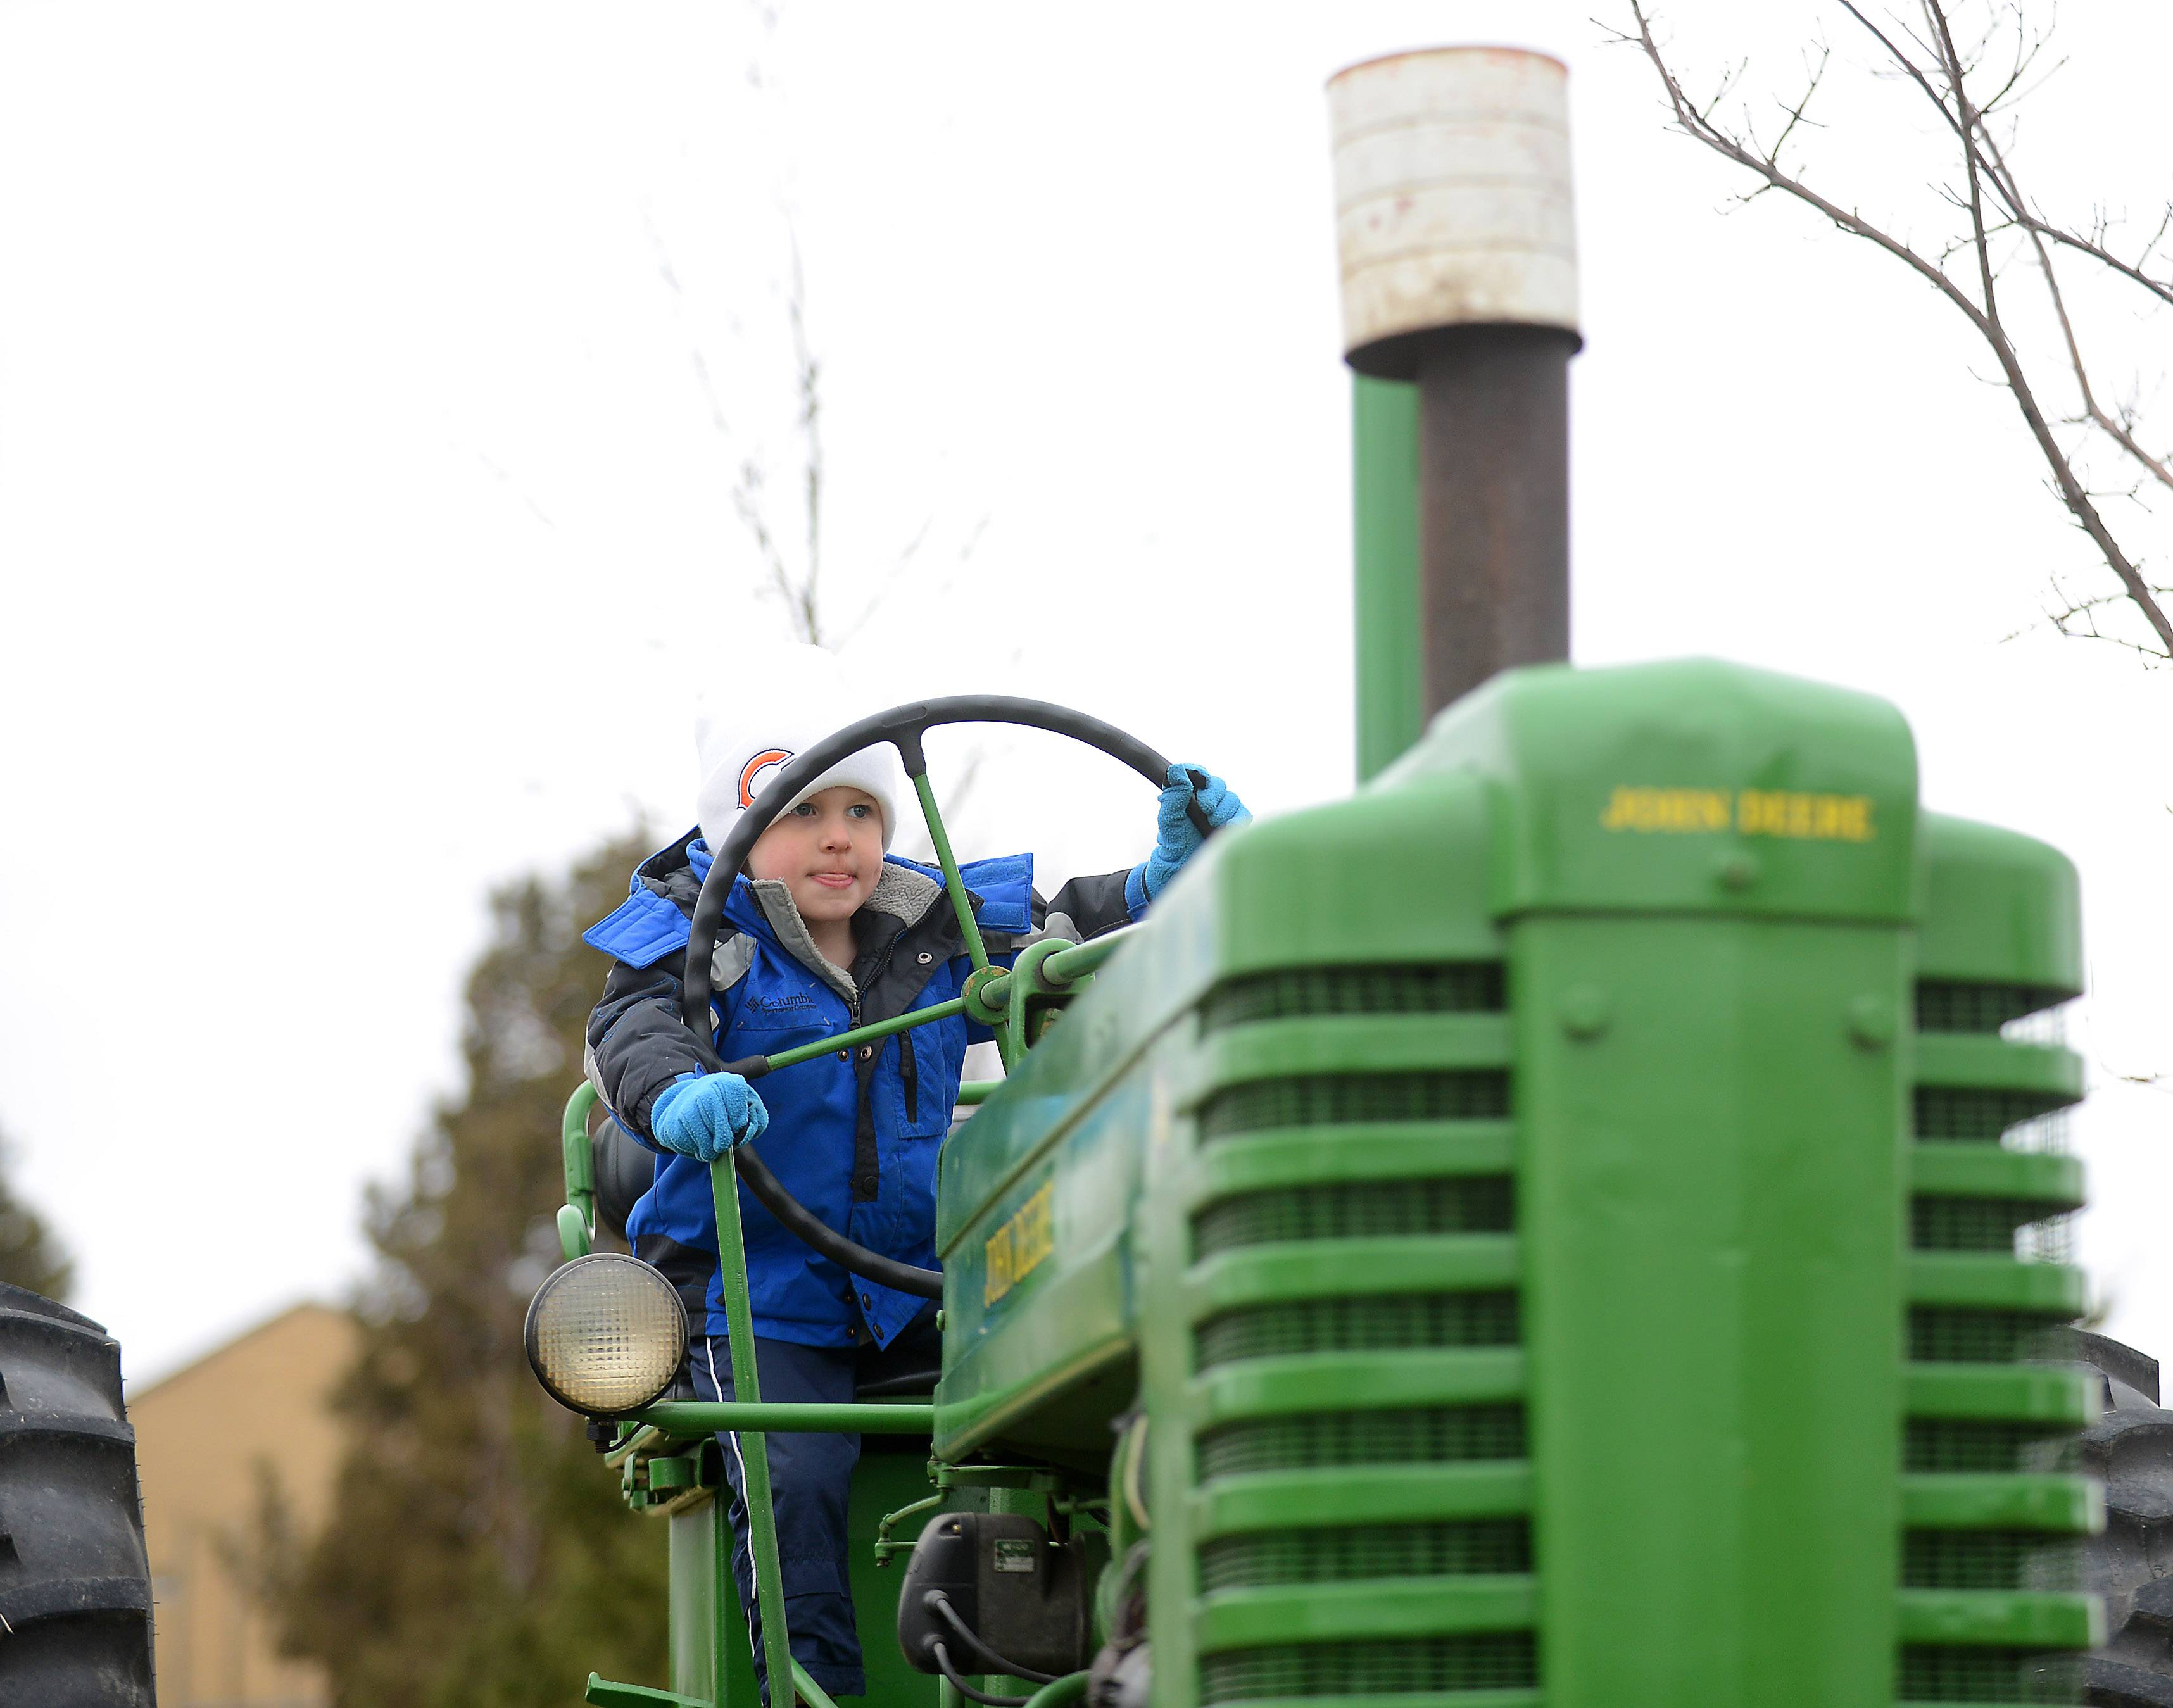 Tyler Bradley, 4, of St. Charles takes the wheel of a 1947 John Deere tractor at the Kane County Farm Bureau Touch-a-Tractor event Friday in St. Charles.